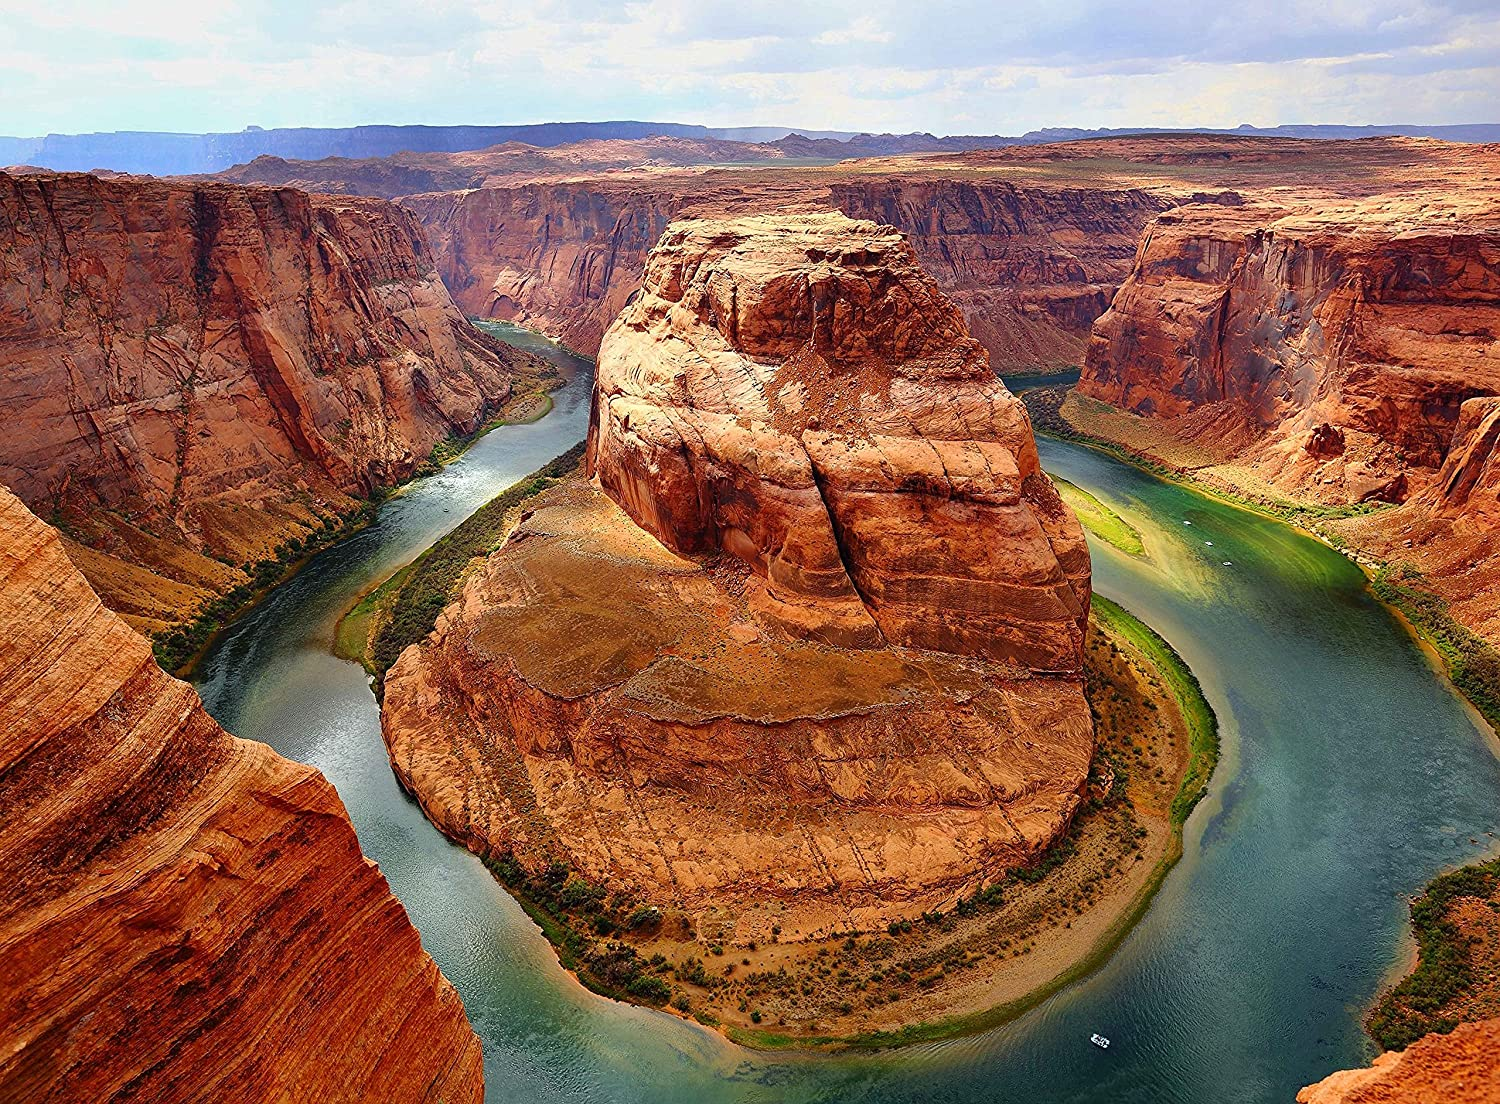 【アウトレット☆送料無料】 Wooden Jigsaw 500-Pieces Puzzle Grand B073W6X2FW Canyon Arizona Horseshoe Bend Colorado River Arizona 500-Pieces B073W6X2FW, ガラス建材の高山:f0c2fcfc --- a0267596.xsph.ru